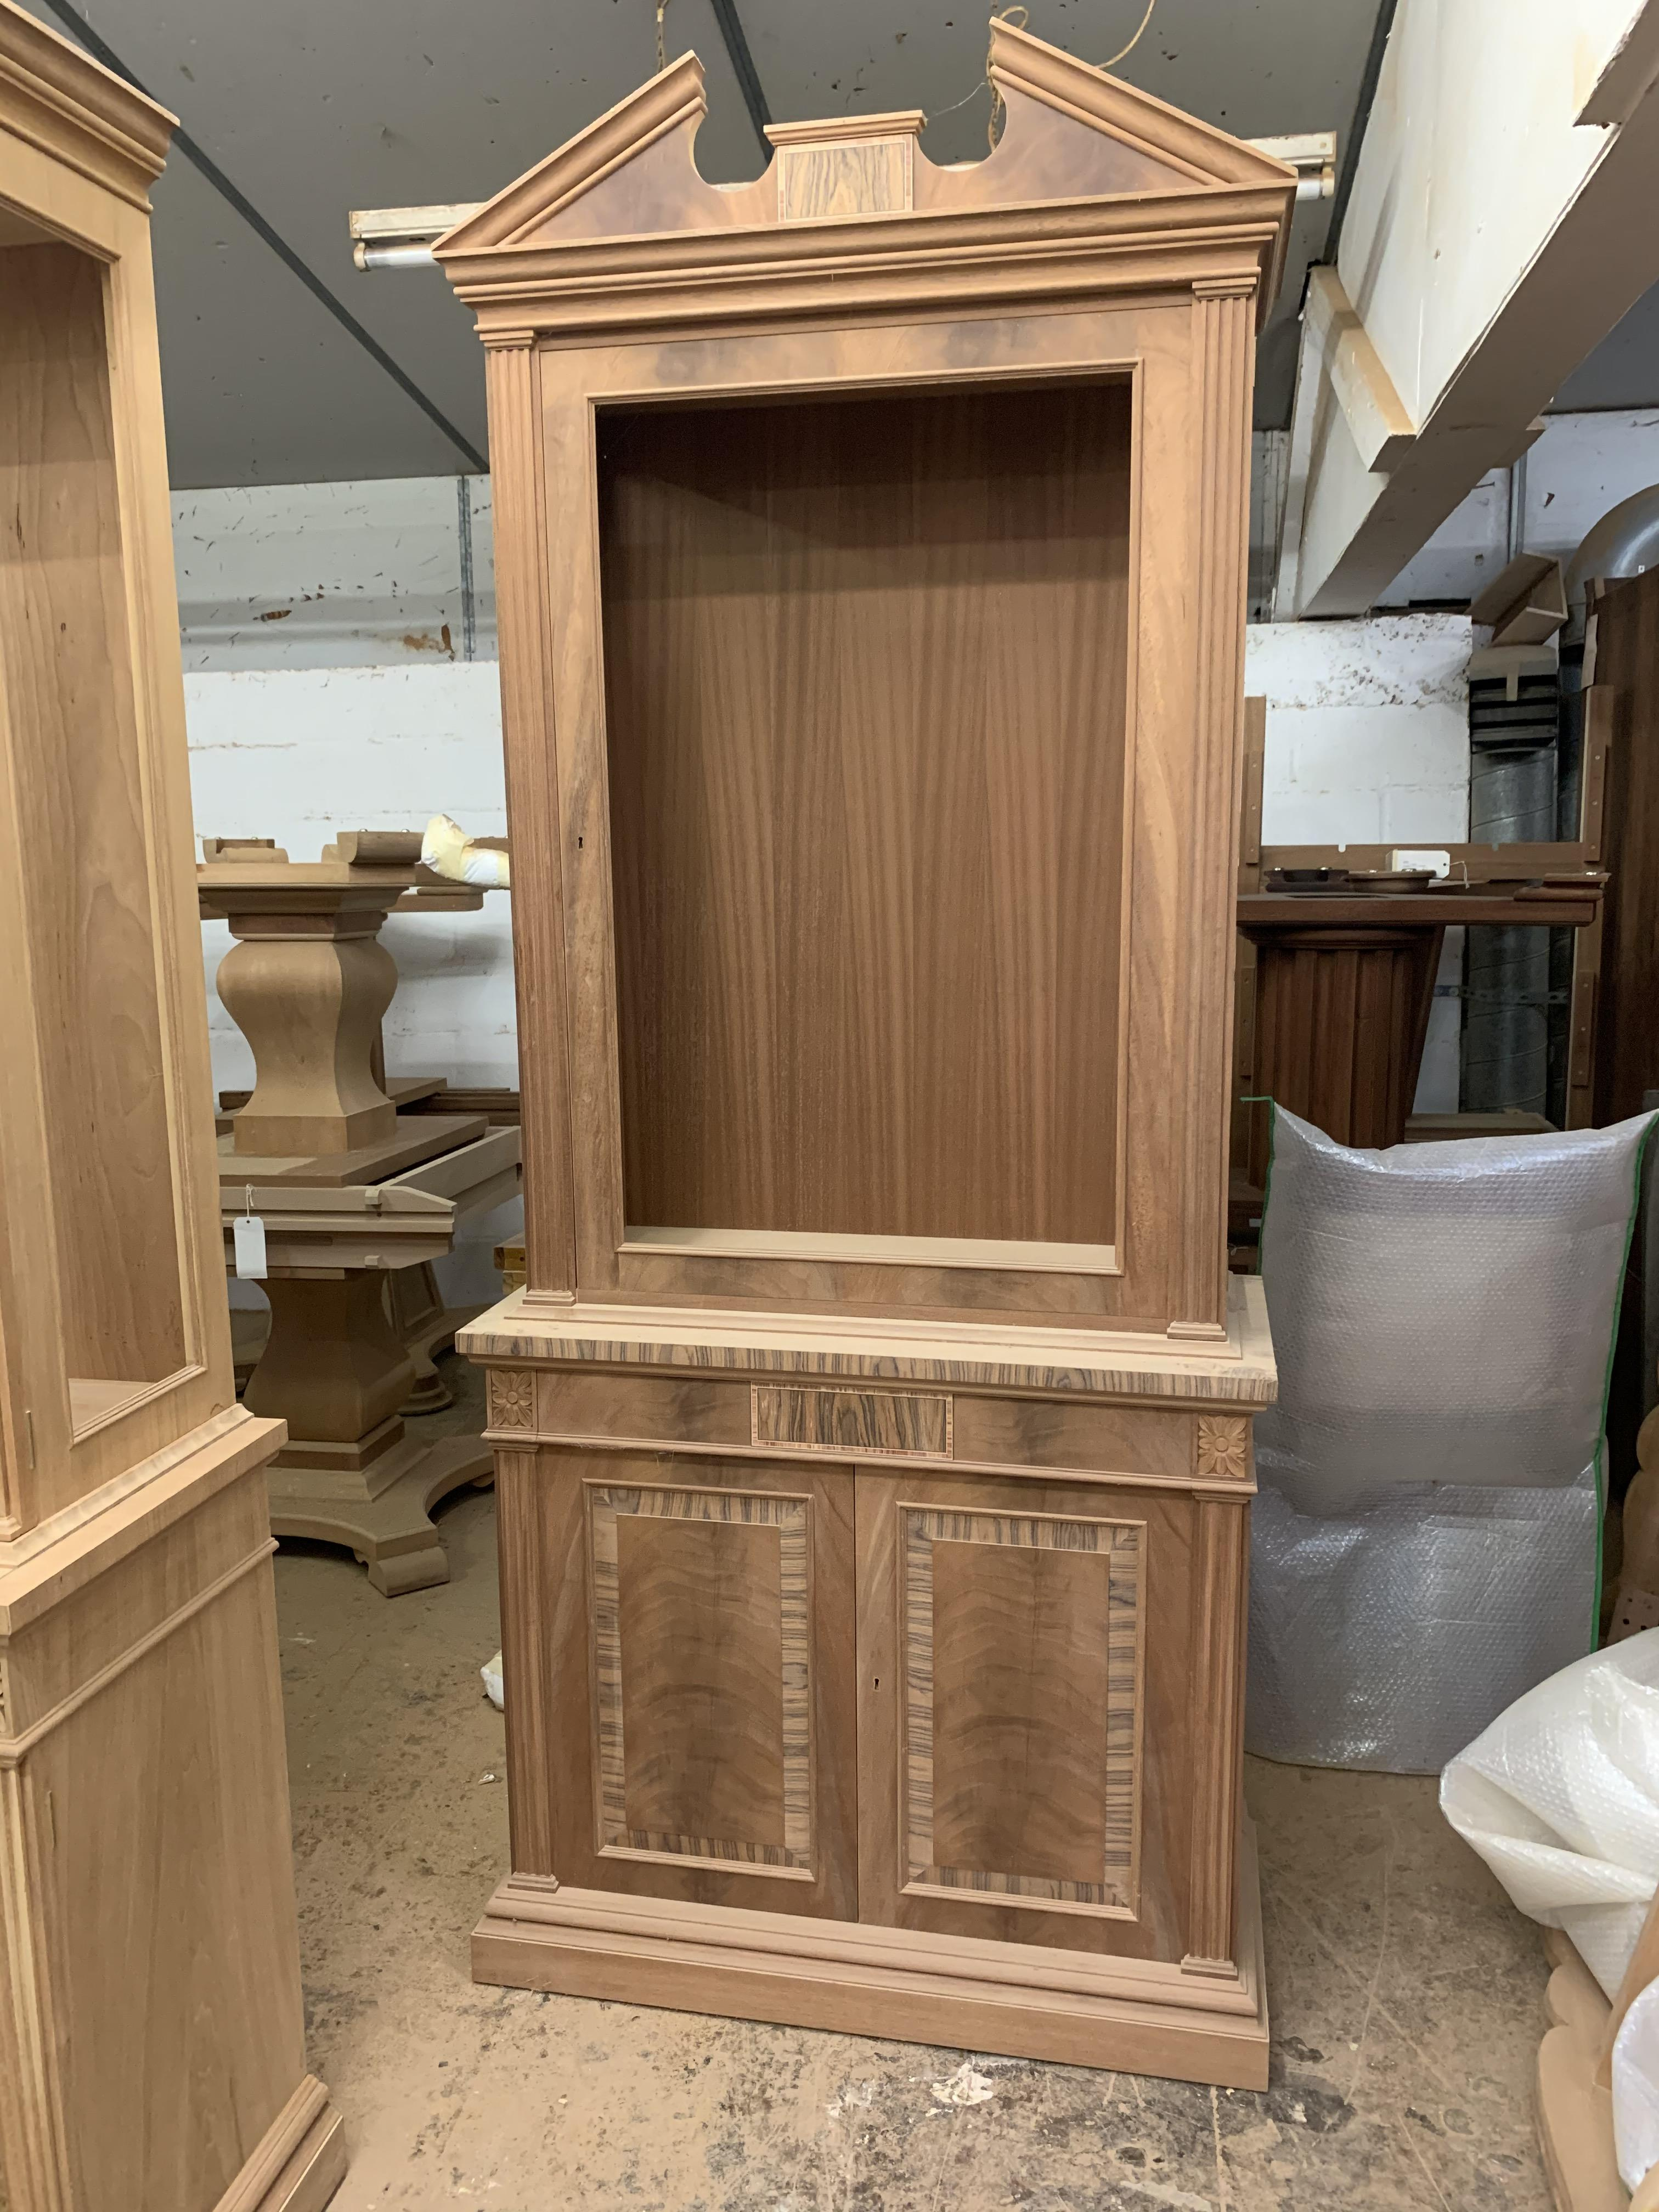 Lot 36 - Two-door tall Bookcase, in mahogany finish, from the Corinthian range, requires finishing/polishing.